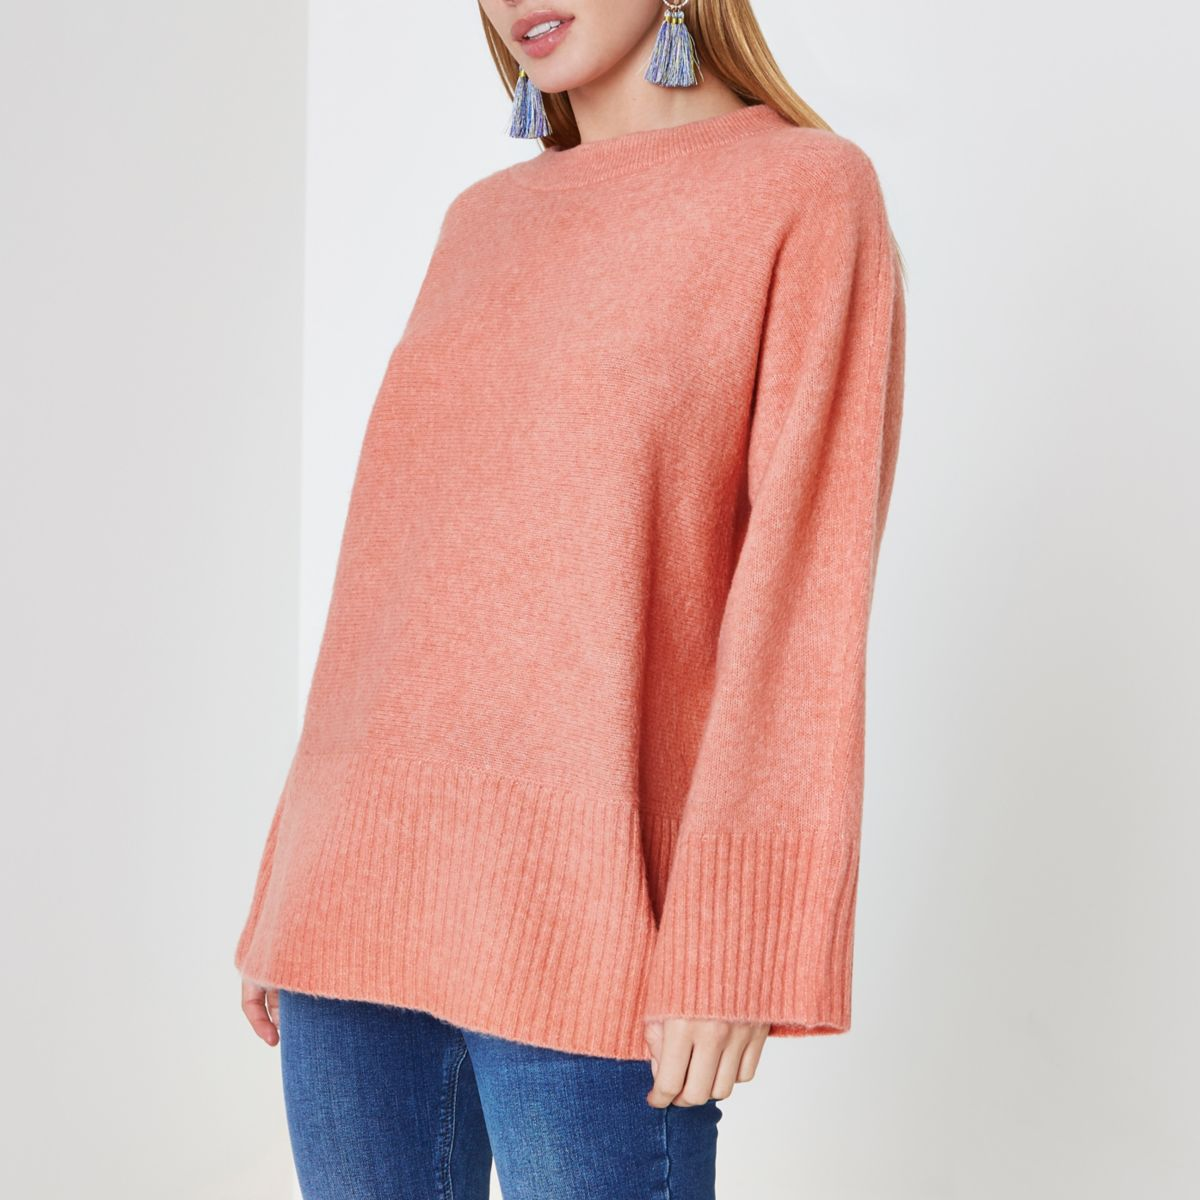 Petite orange tie back sweater